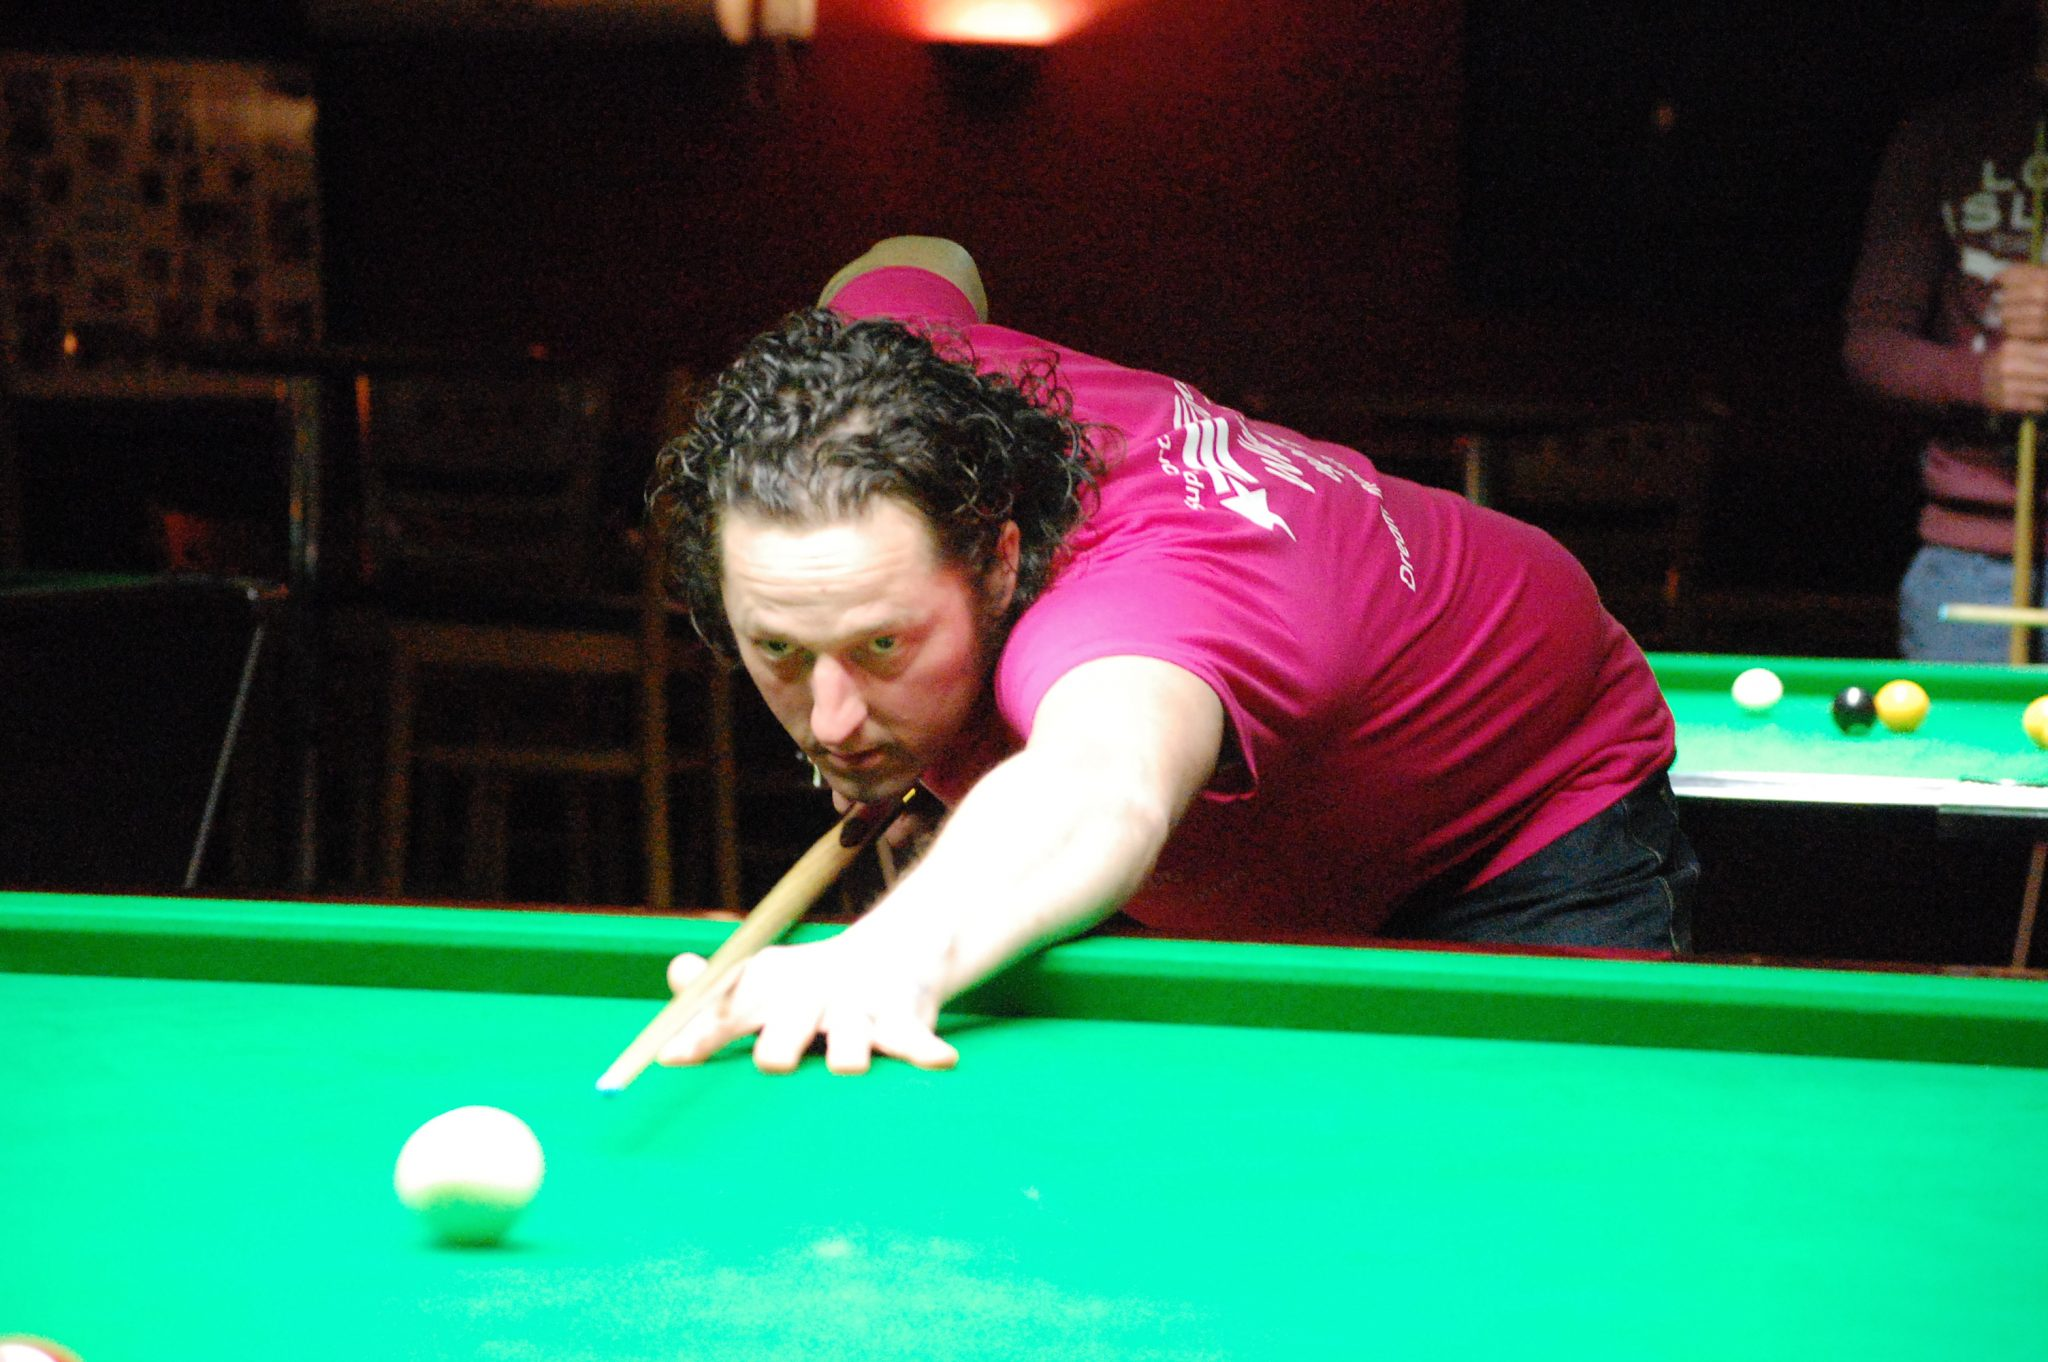 Steve wins another close frame at Stapleford Cue Club